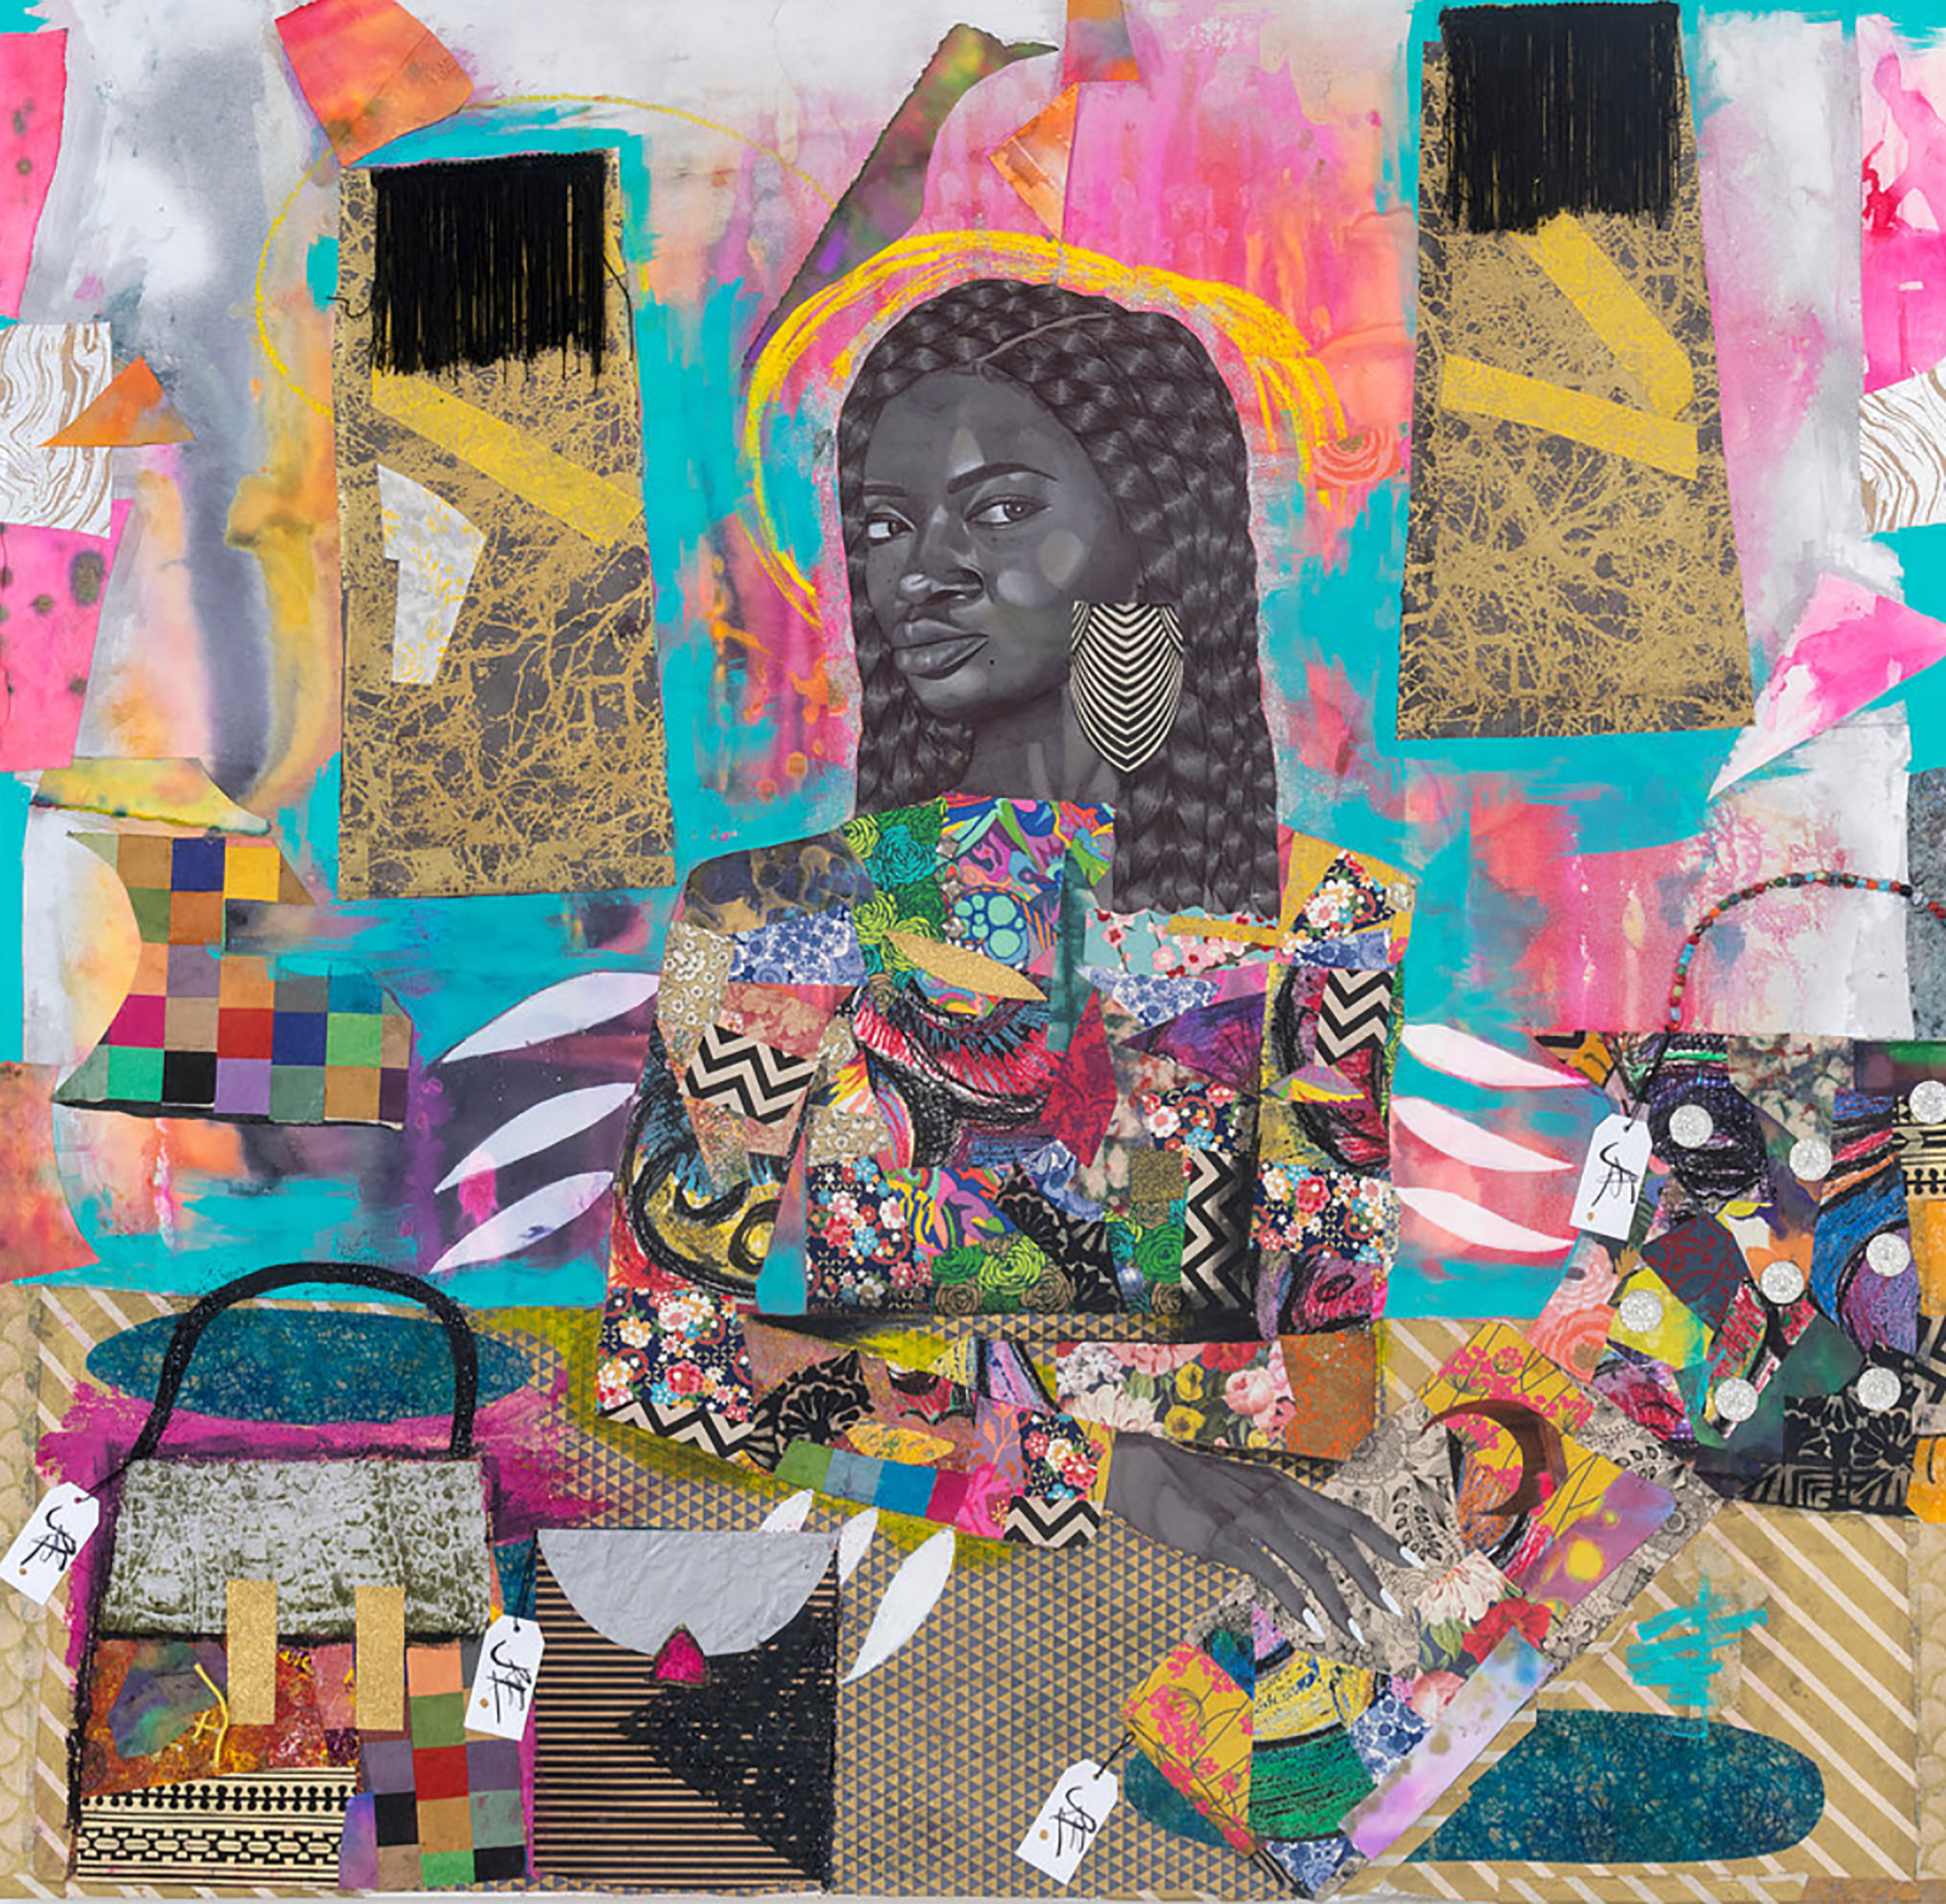 """""""Bag Lady,"""" 2018, 53 x 55 in. Acrylic, spray paint, glitter, ink and cut paper collage on canvas. Courtesy of Kravets/Wehby Gallery and the artist."""